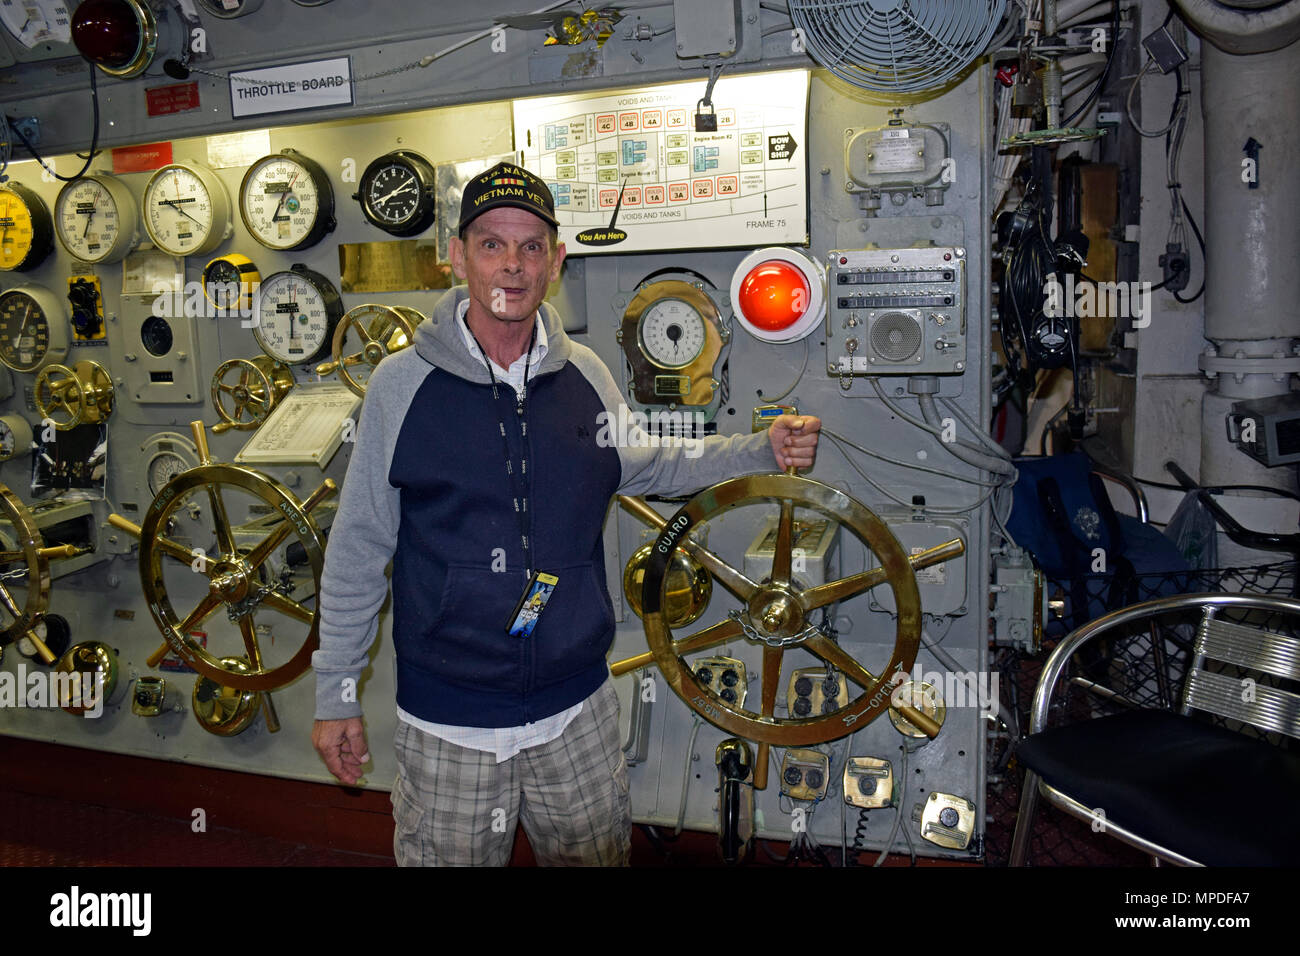 US Navy Vietnam Veteran hand on the throttle in the engine room, control room, of the USS Midway aircraft carrier Museum, San Diego, California Stock Photo